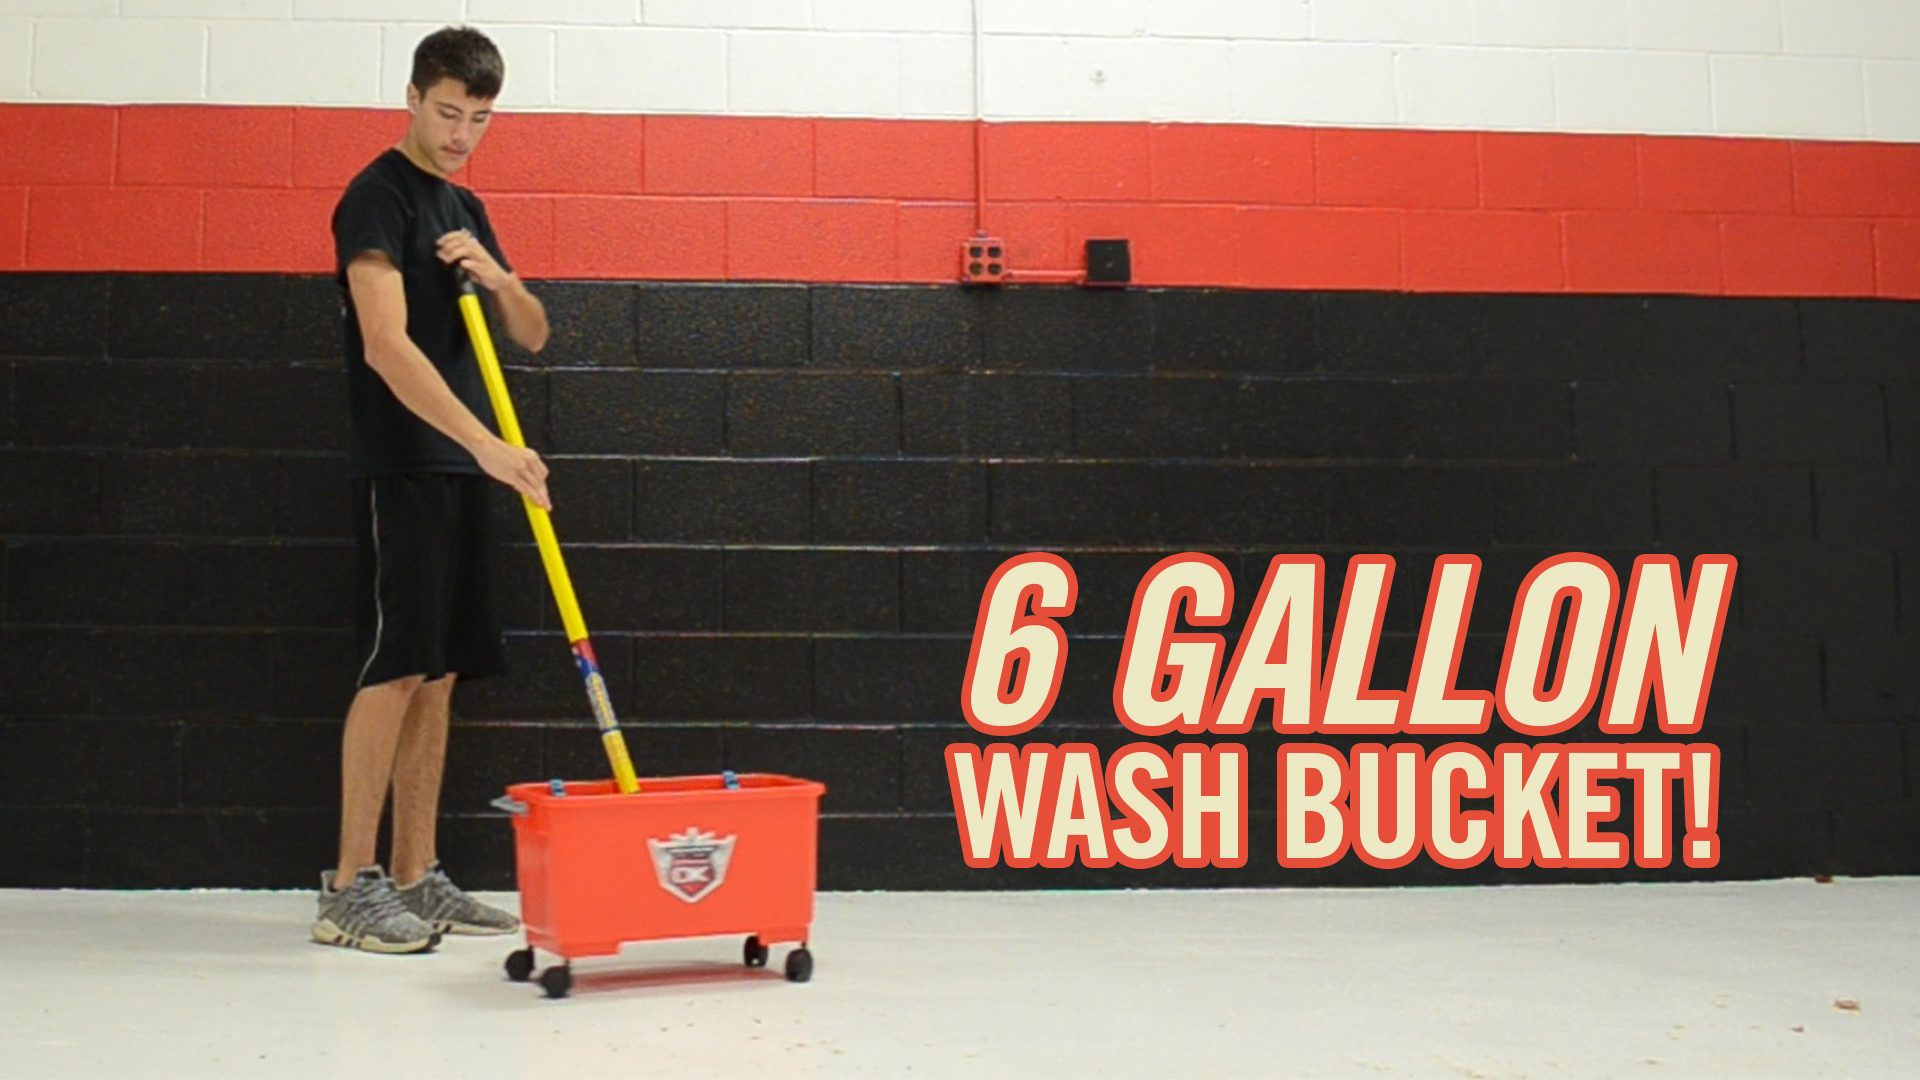 6 Gallon Wash Bucket